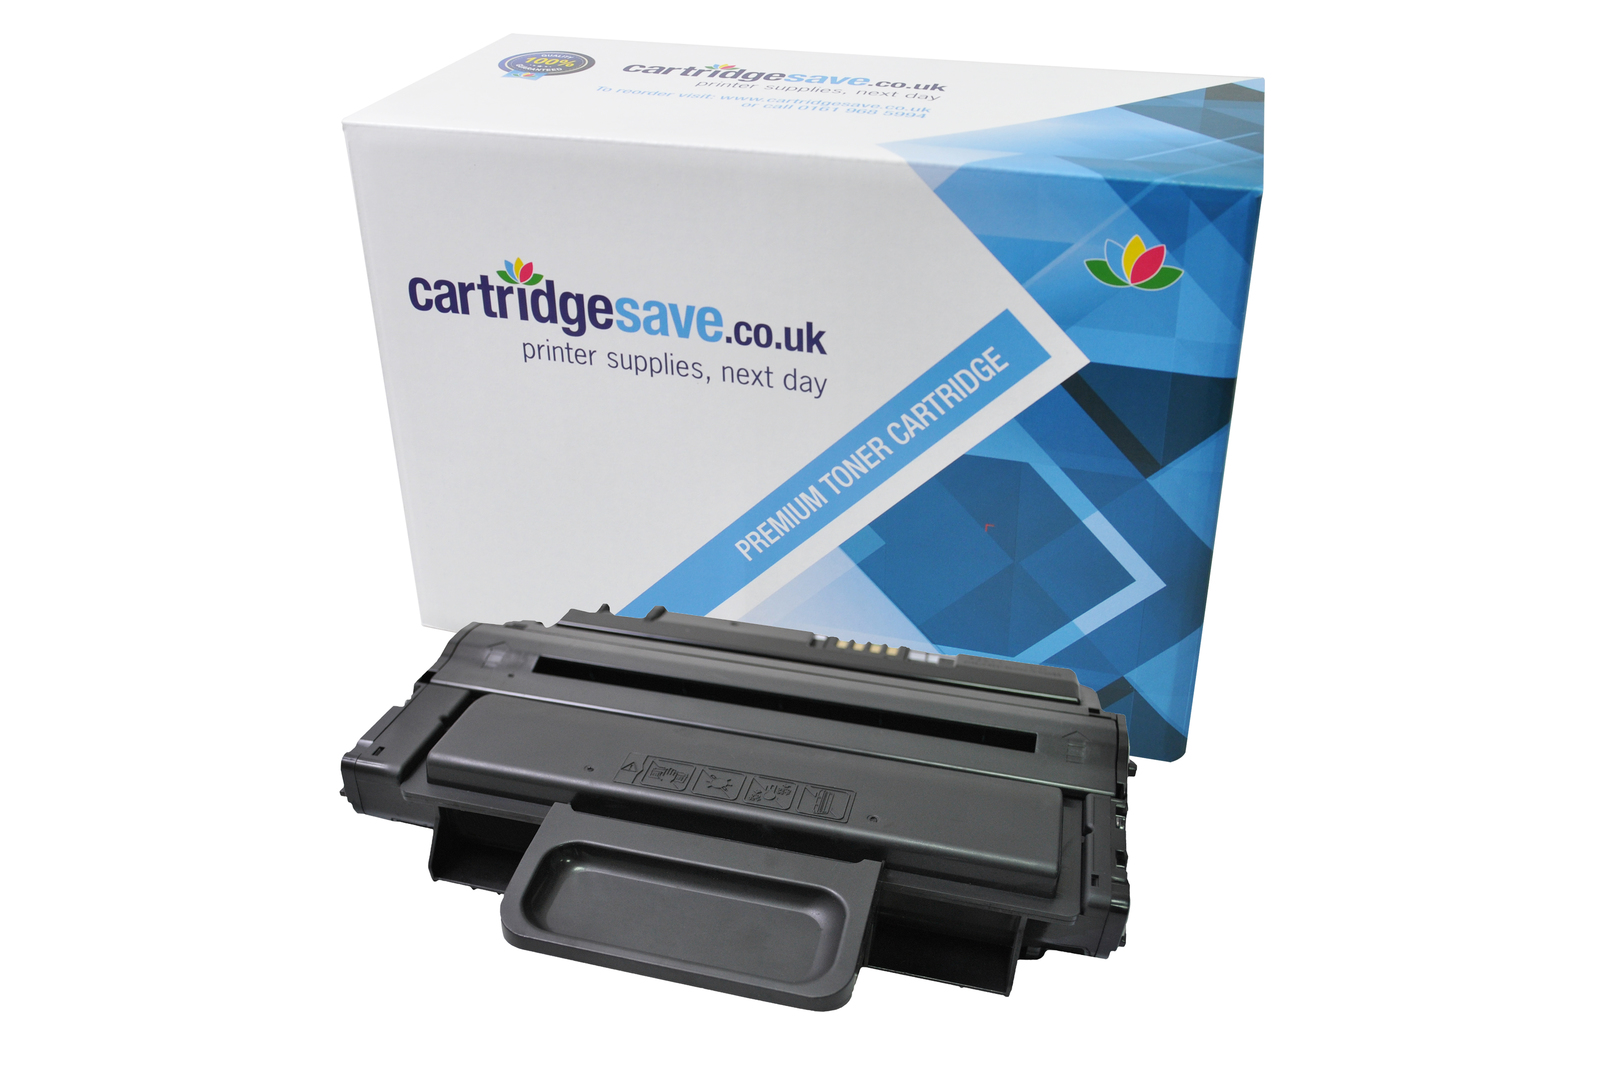 Compatible High Capacity Black Samsung 2092L Laser Toner - (Replaces Samsung MLT-D2092L/ELS Laser Printer Cartridge)